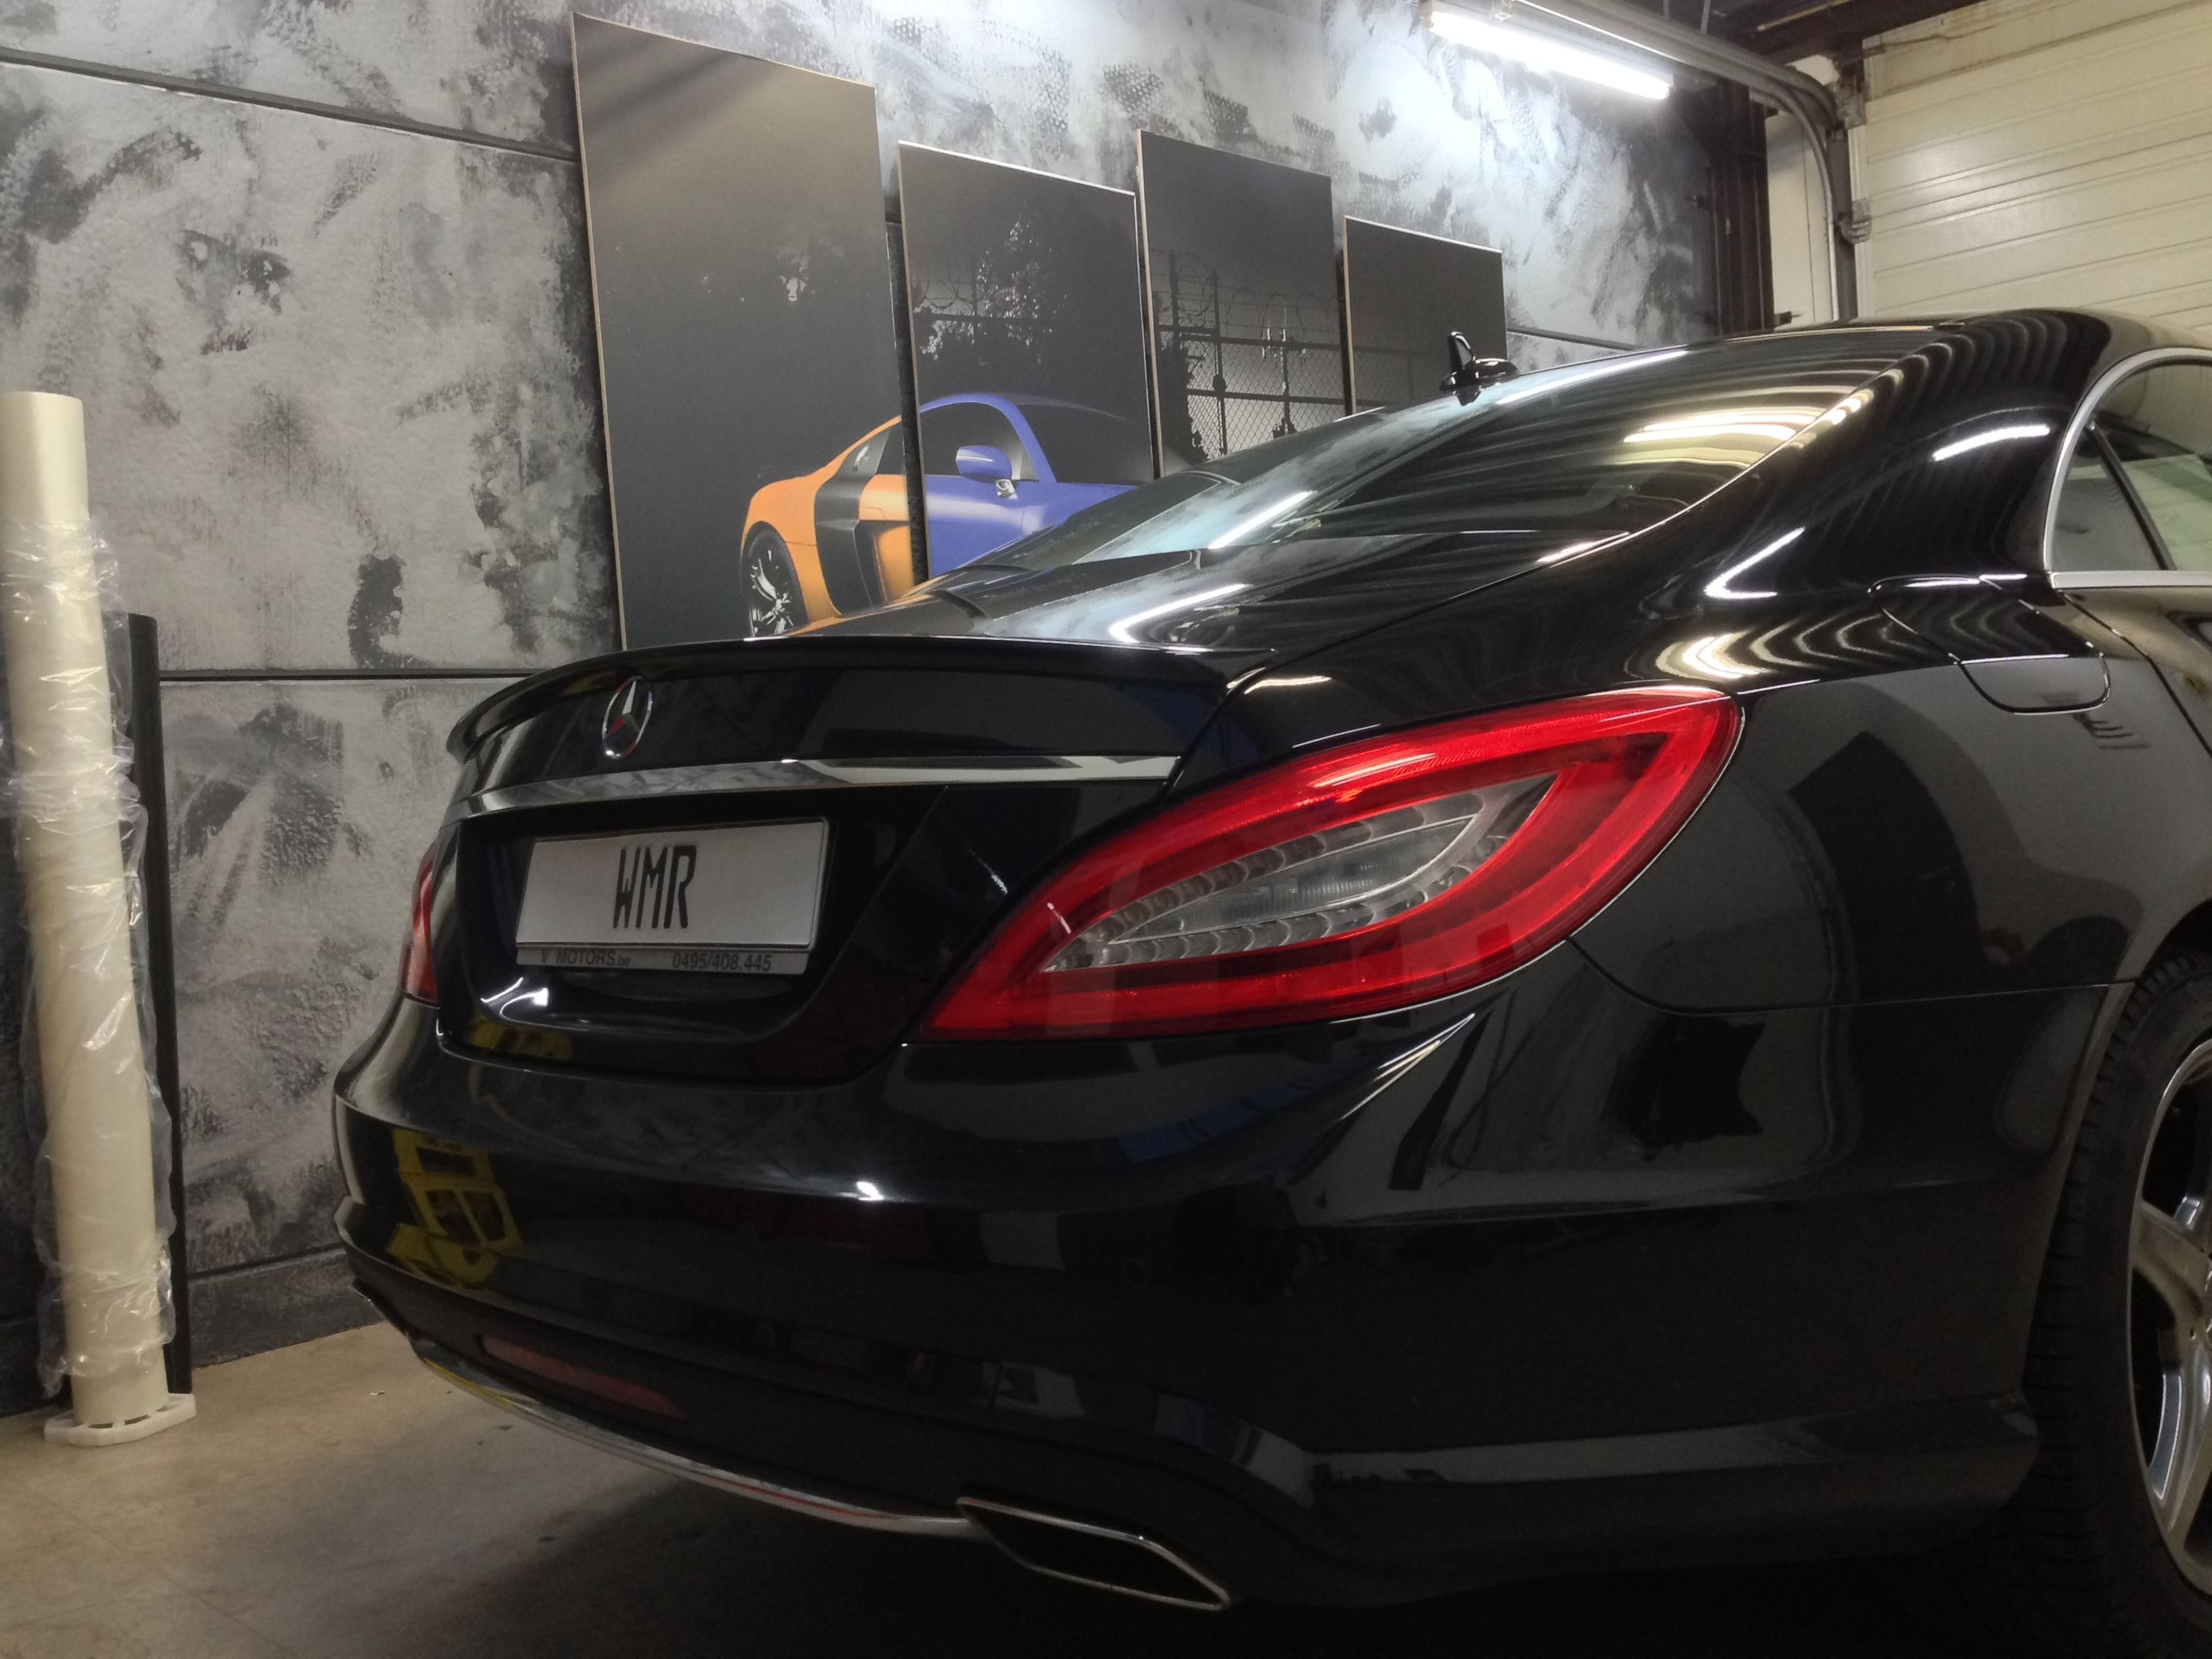 Mercedes CLS met White Satin Pearl Wrap, Carwrapping door Wrapmyride.nu Foto-nr:6174, ©2020